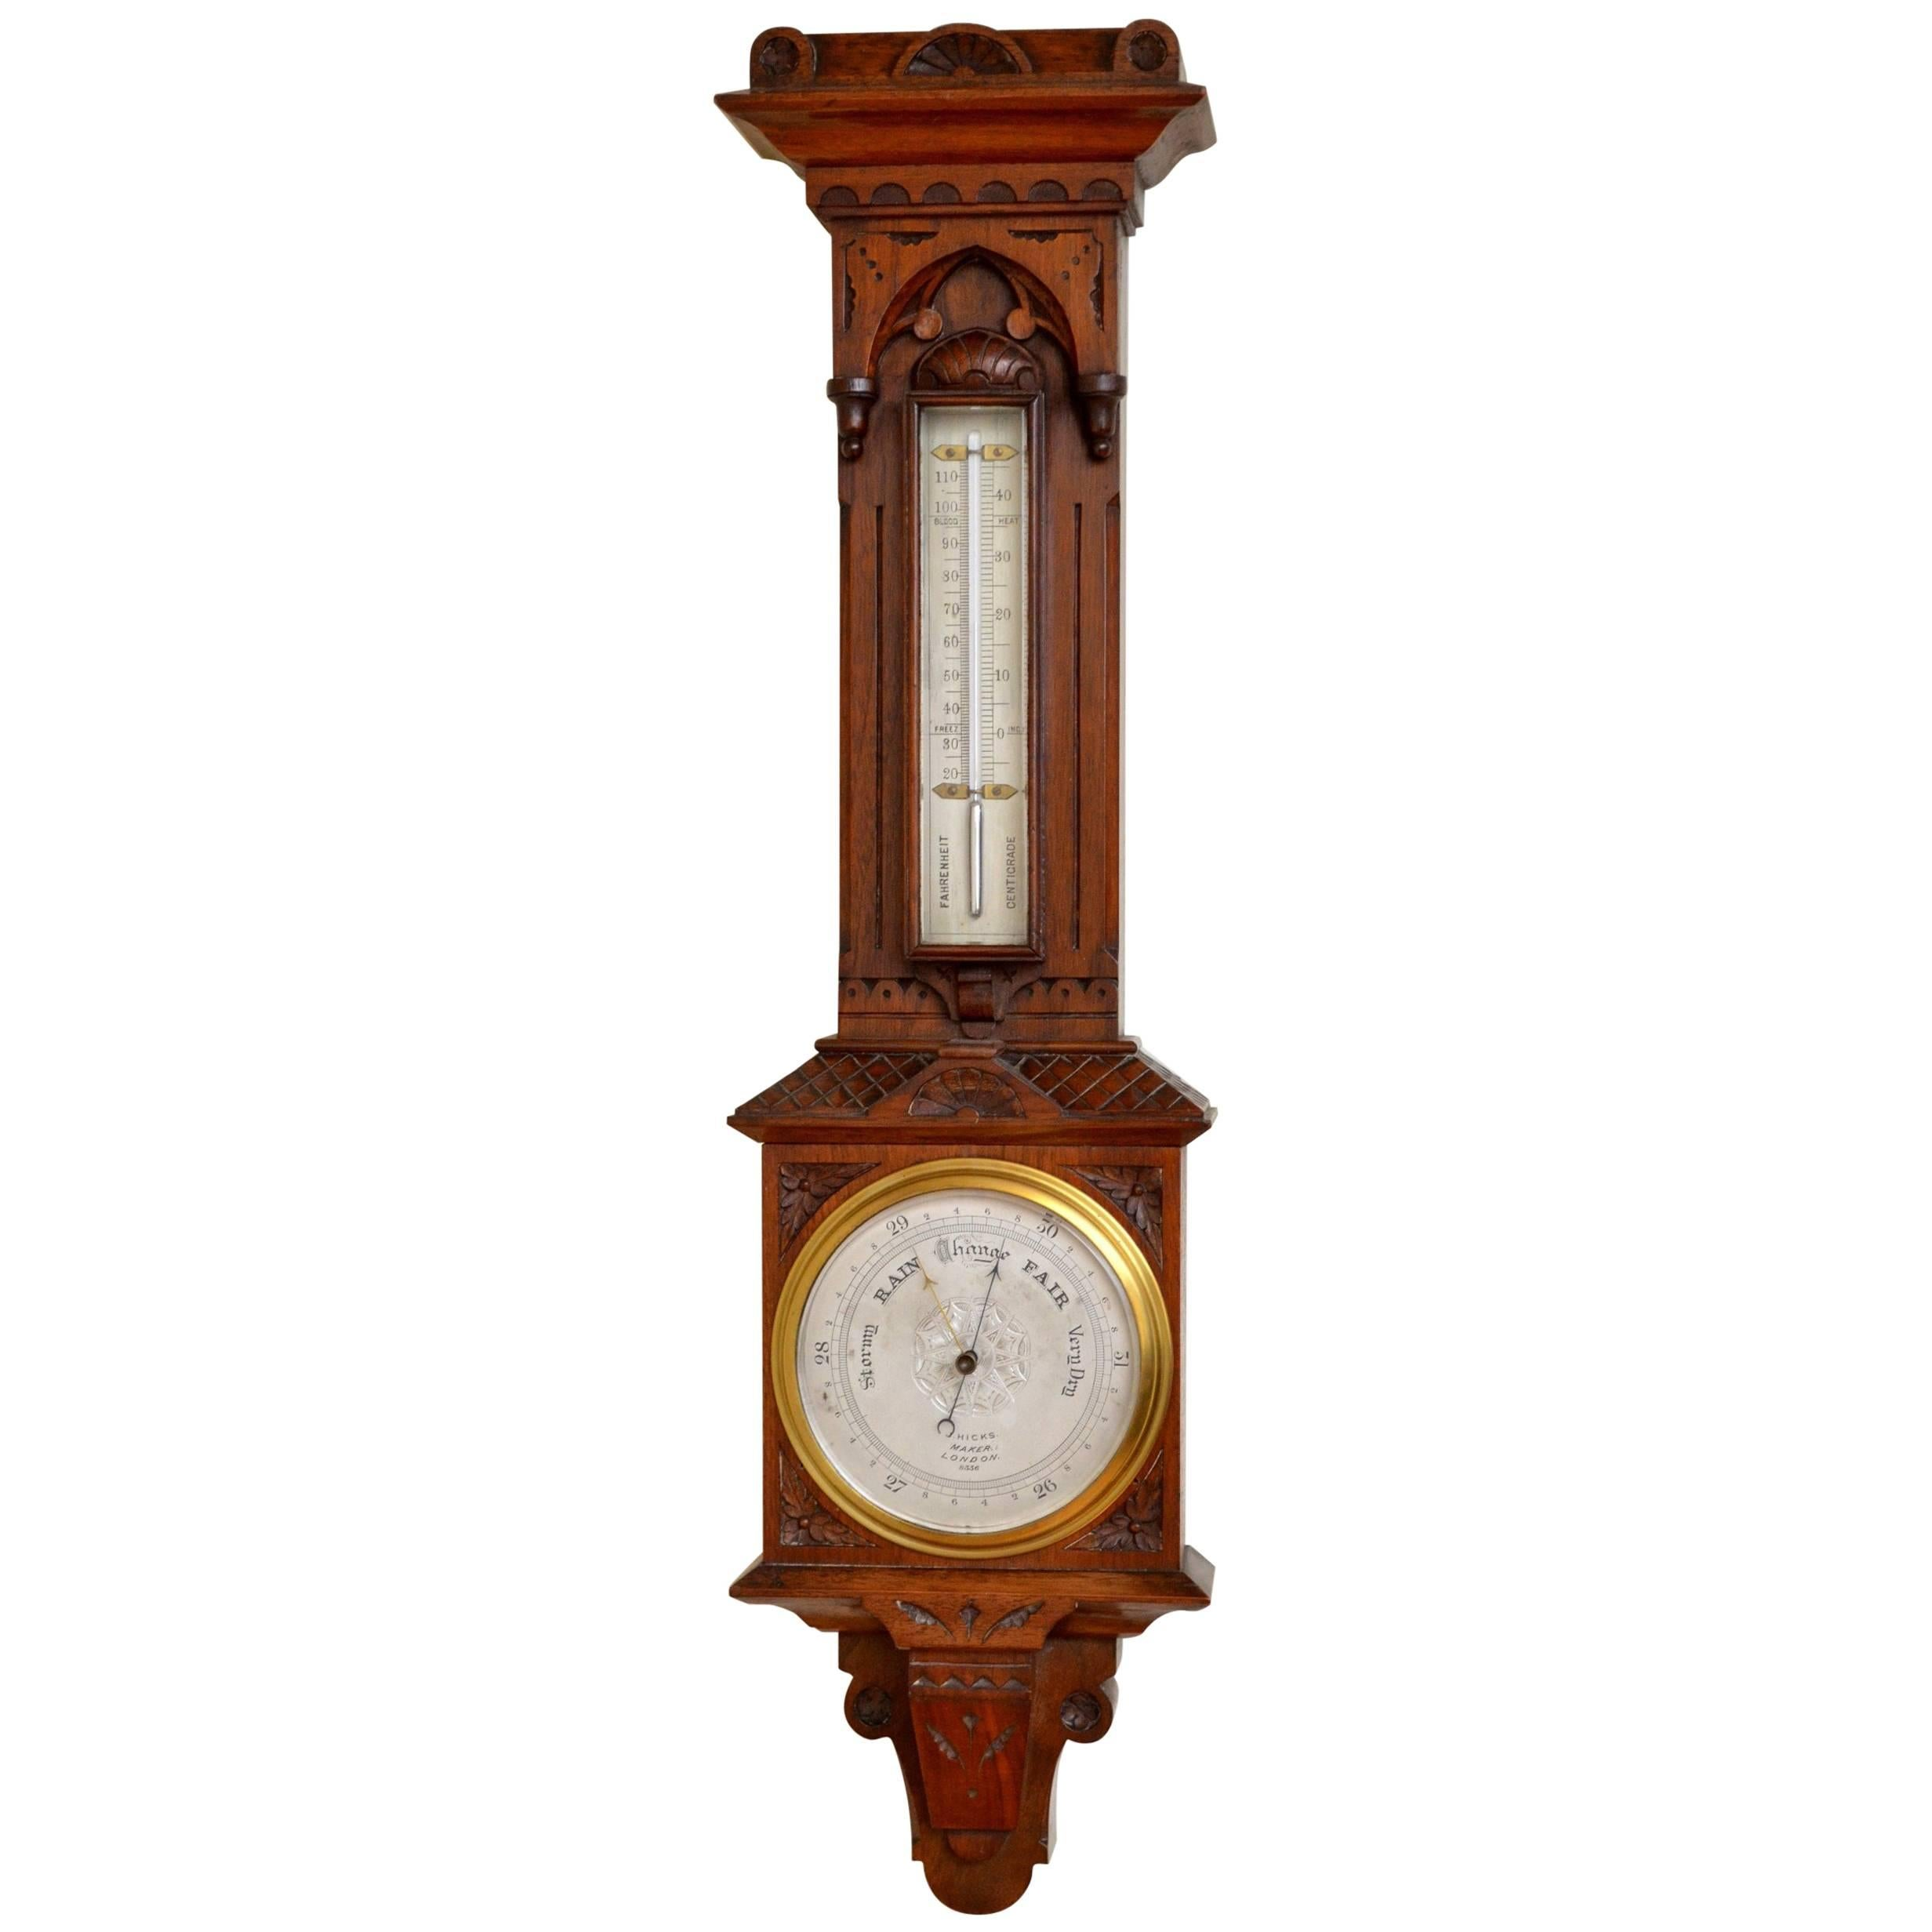 england s watches clock uk iii late the mahogany art clocks search george and wheeler desbois premier antiques period topwell tavern